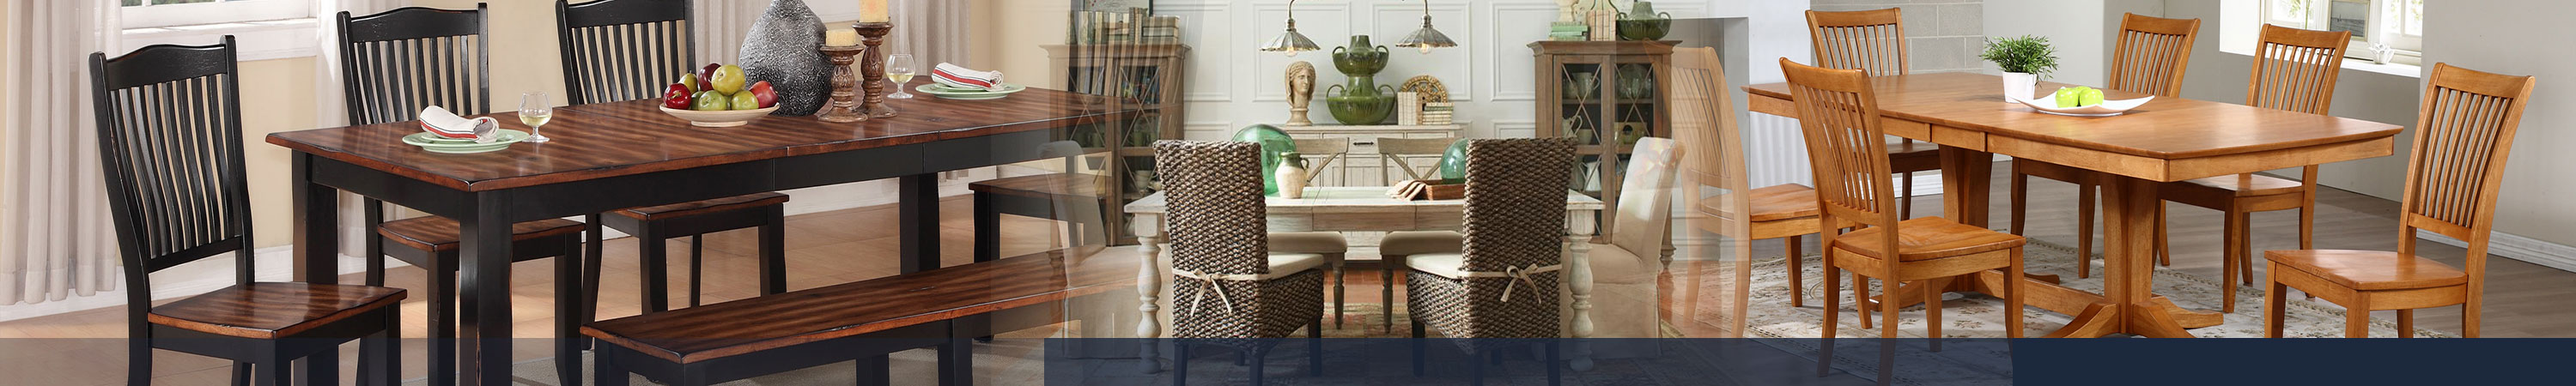 Dining Room Furniture Cary NC